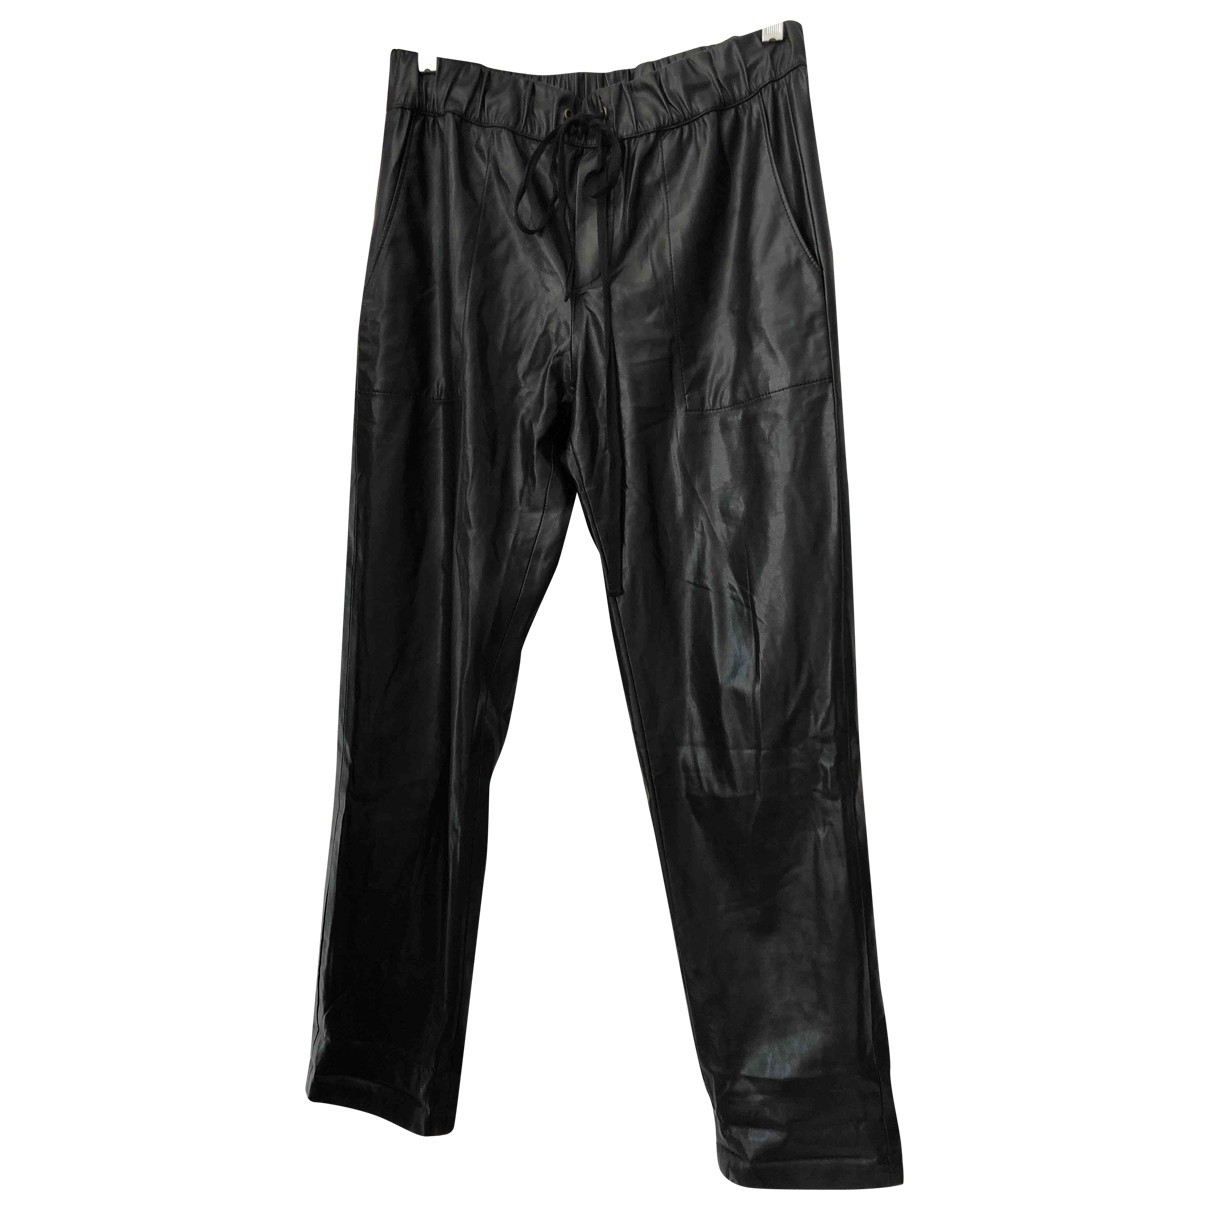 Enza Costa \N Black Leather Trousers for Women 2 US